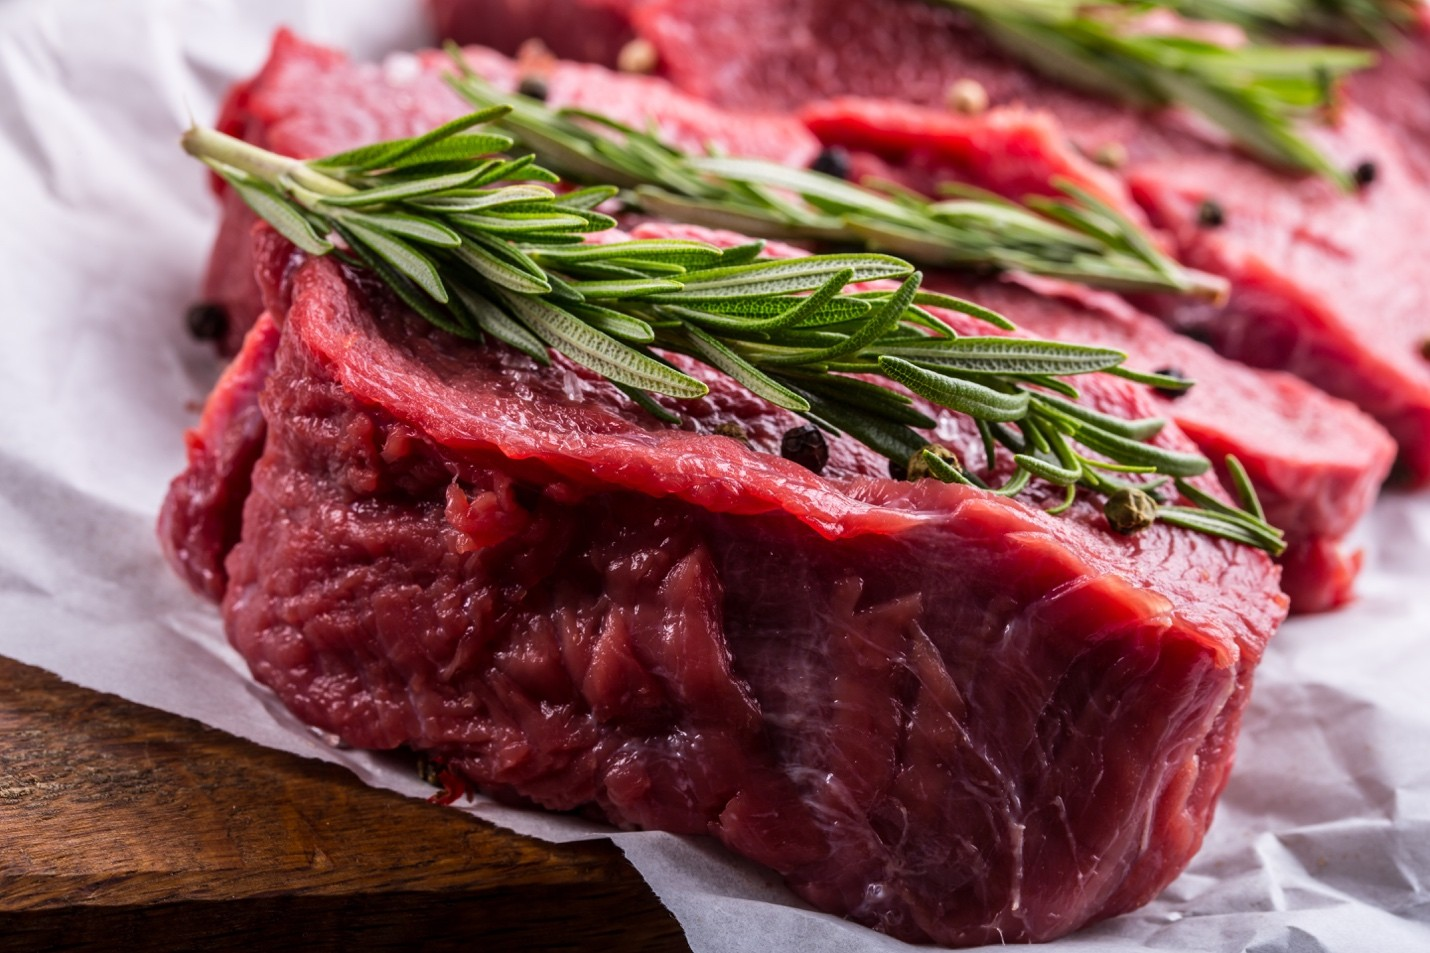 beef - Top 20 Natural Foods To Help You Manage Your Diabetes Effectively